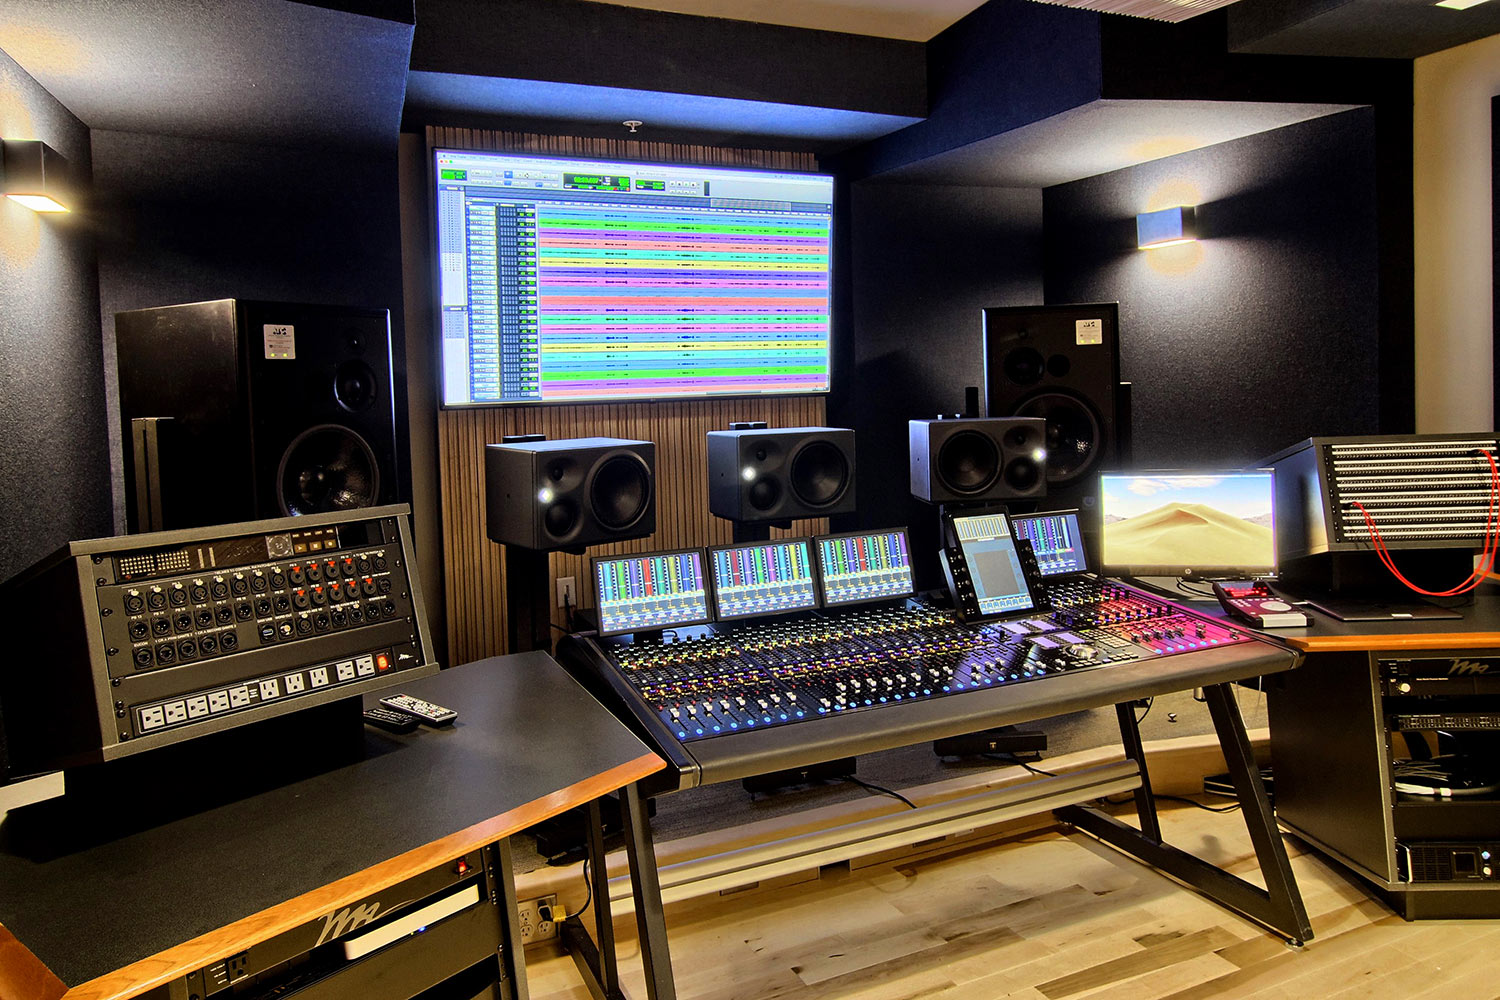 Interlochen has recently completed their new complex. A key component of the new complex is a state-of-the-art recording/teaching studio complex developed by WSDG. Second Floor Studio.